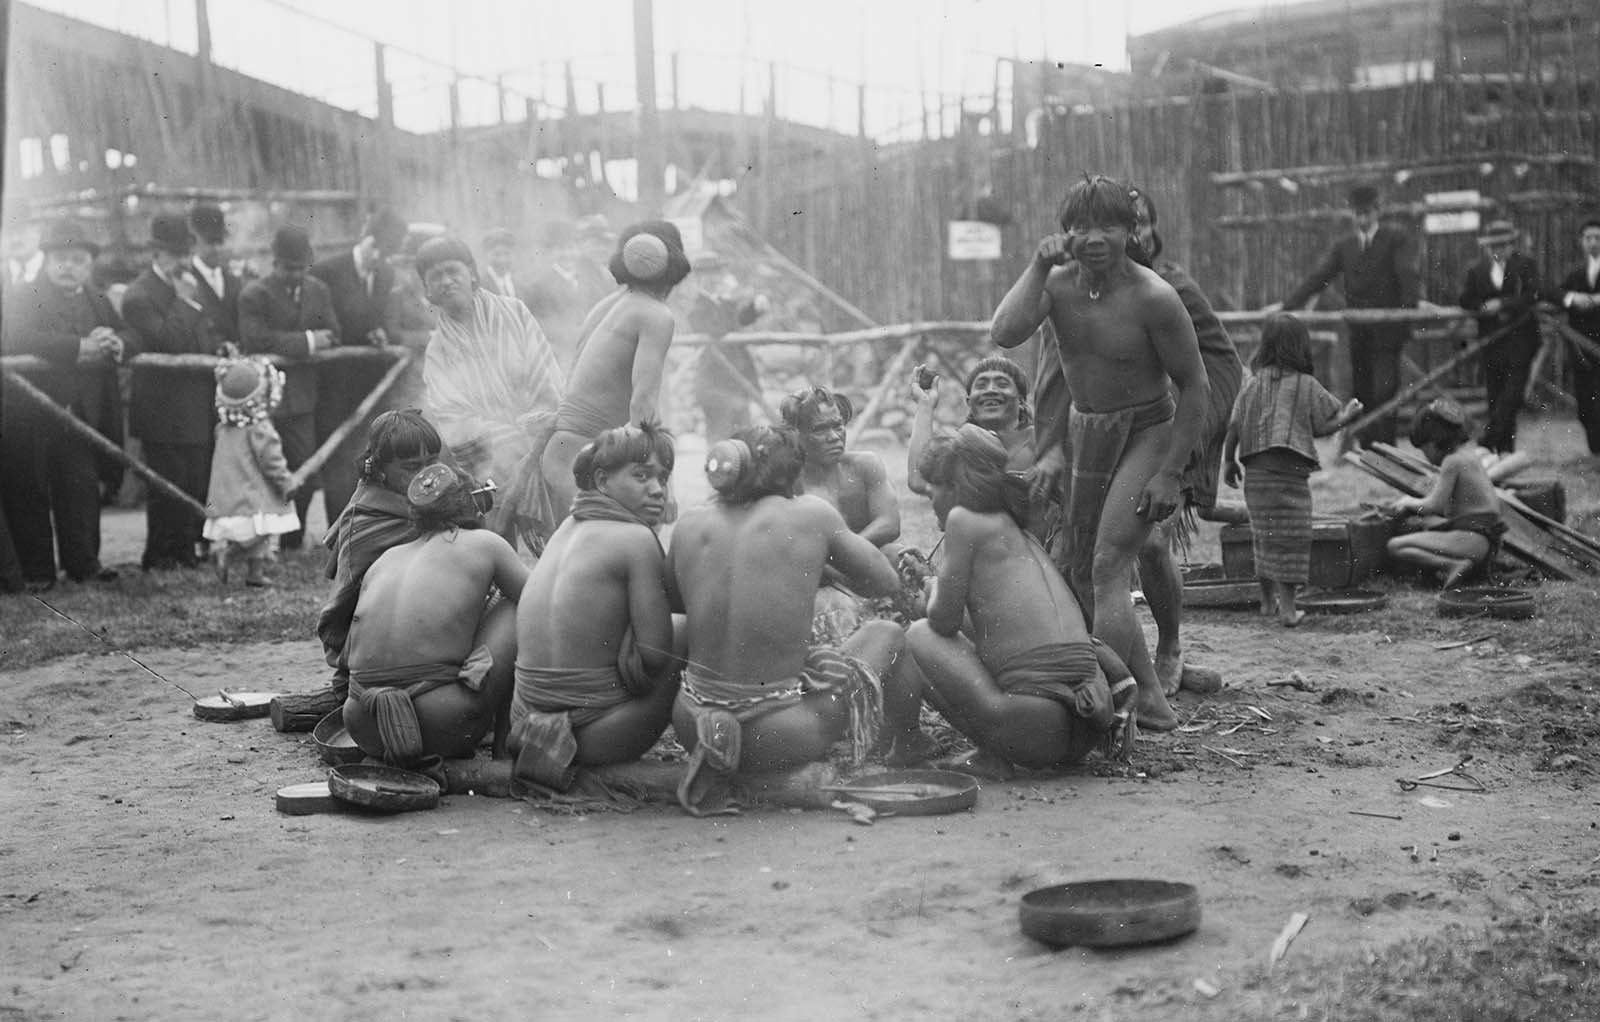 Filipinos are pictured in loin cloths sitting in a circle together at Coney Island in New York in the early 20th century while crowds of Americans watch on from behind barriers.